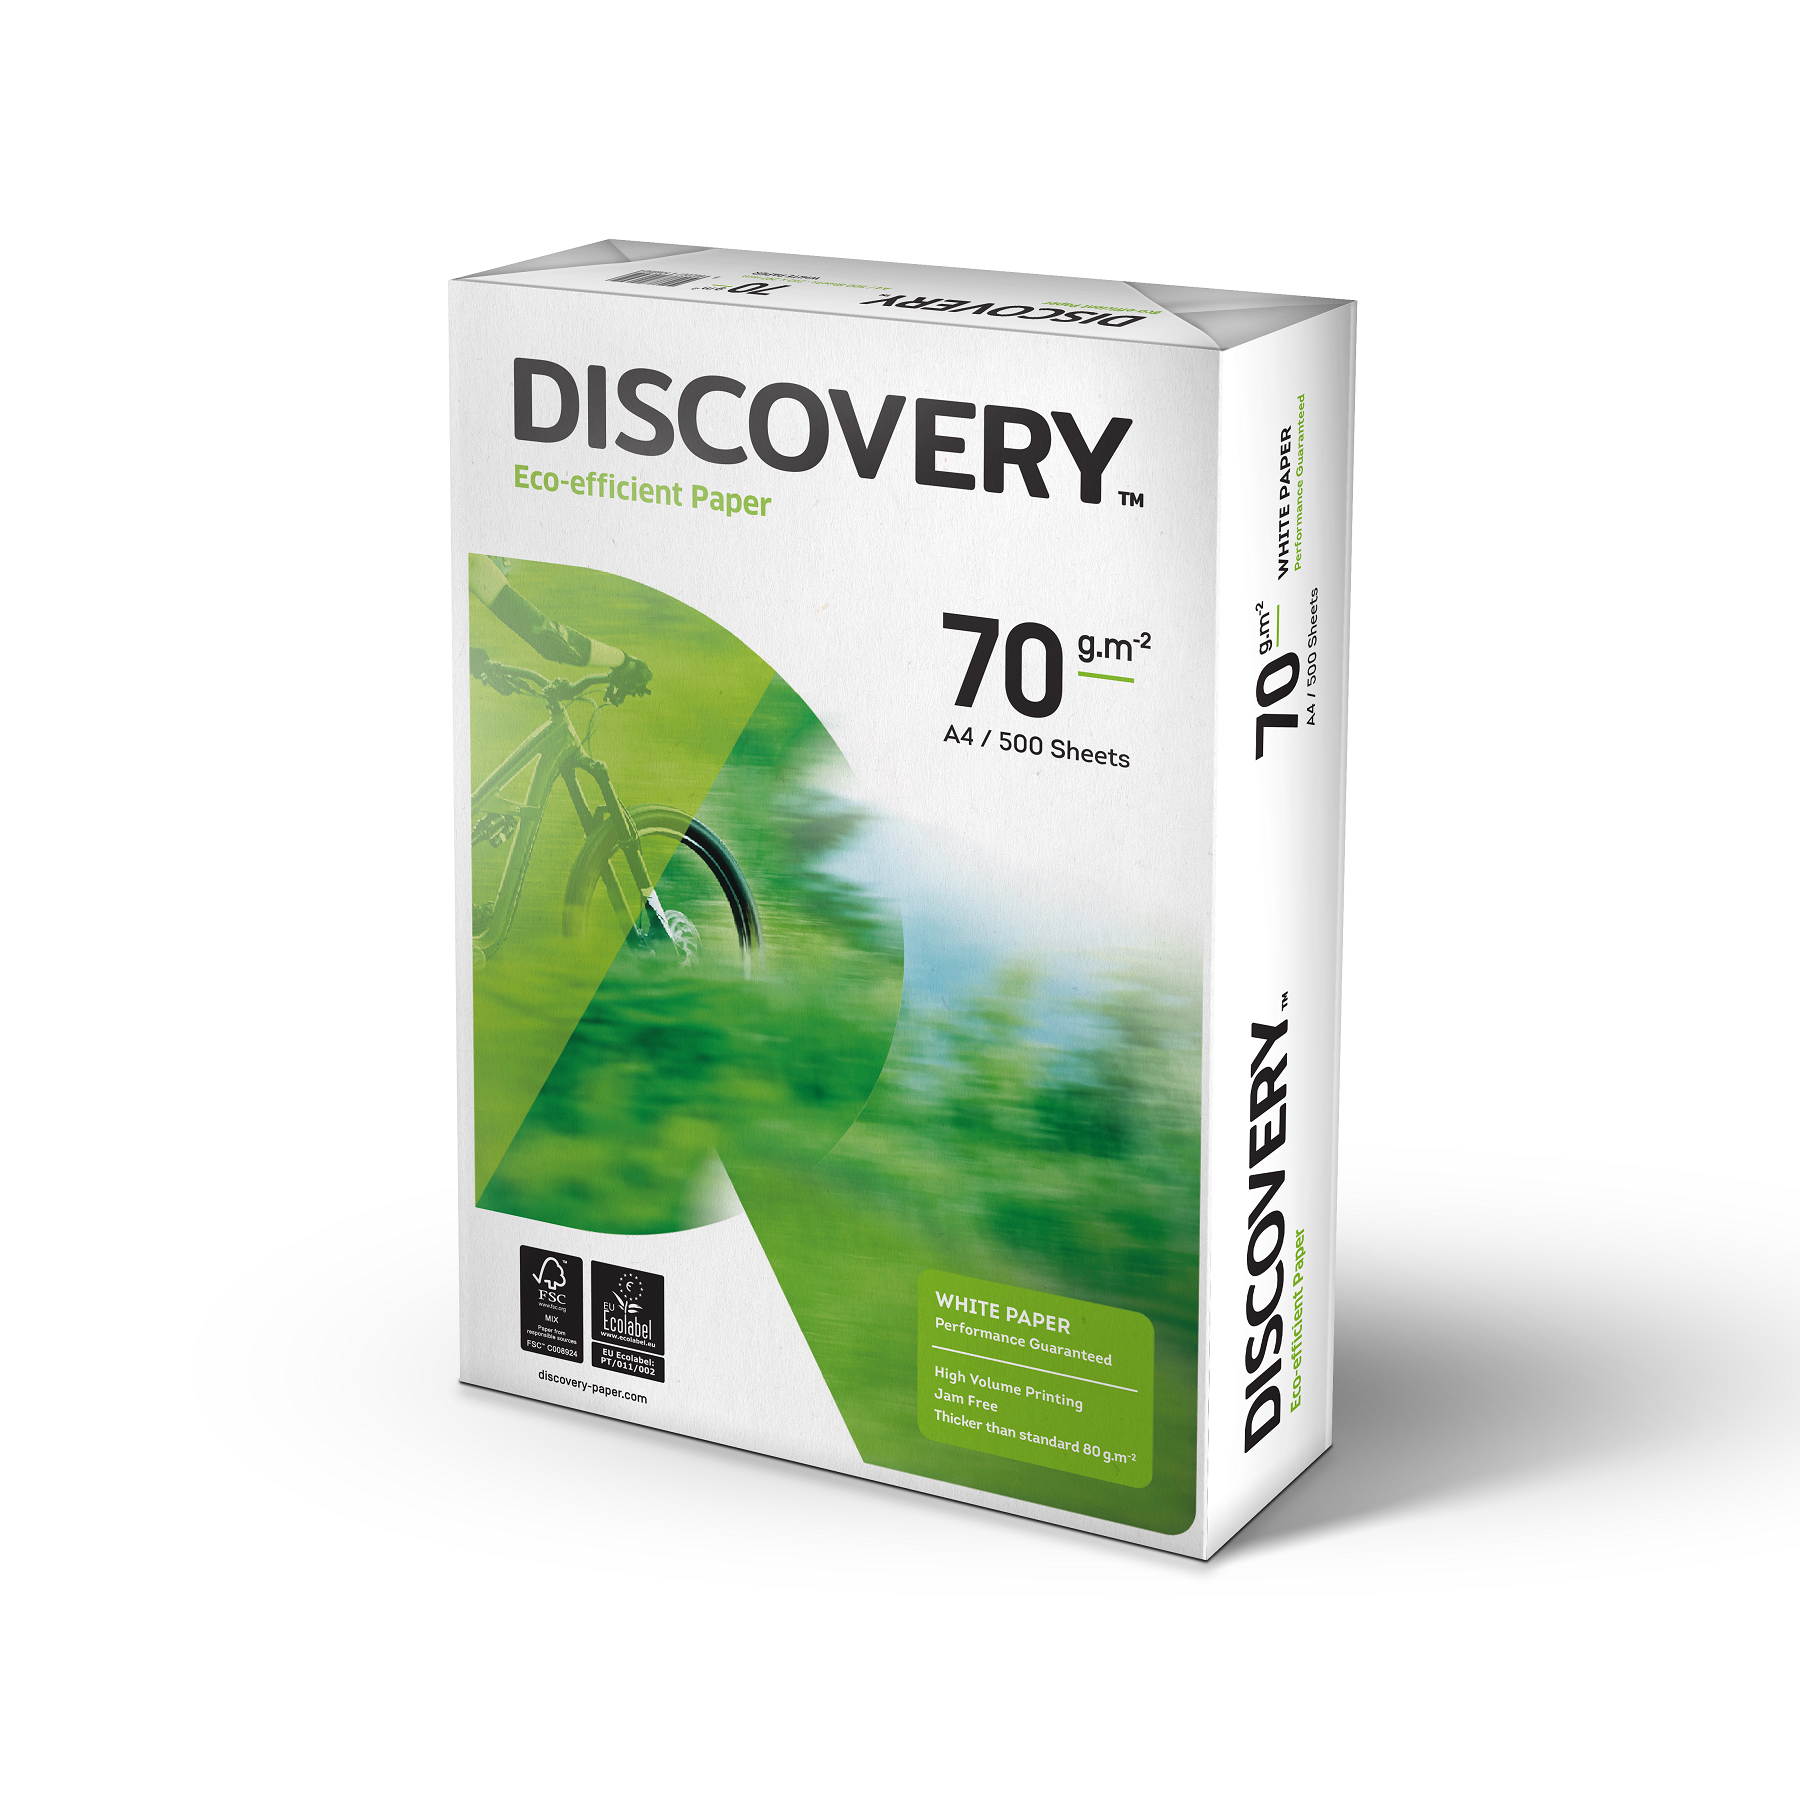 Discovery Everyday Paper Ream Wred A4 70gsm White Ref Ndi0700025 5 X 500 Sheets